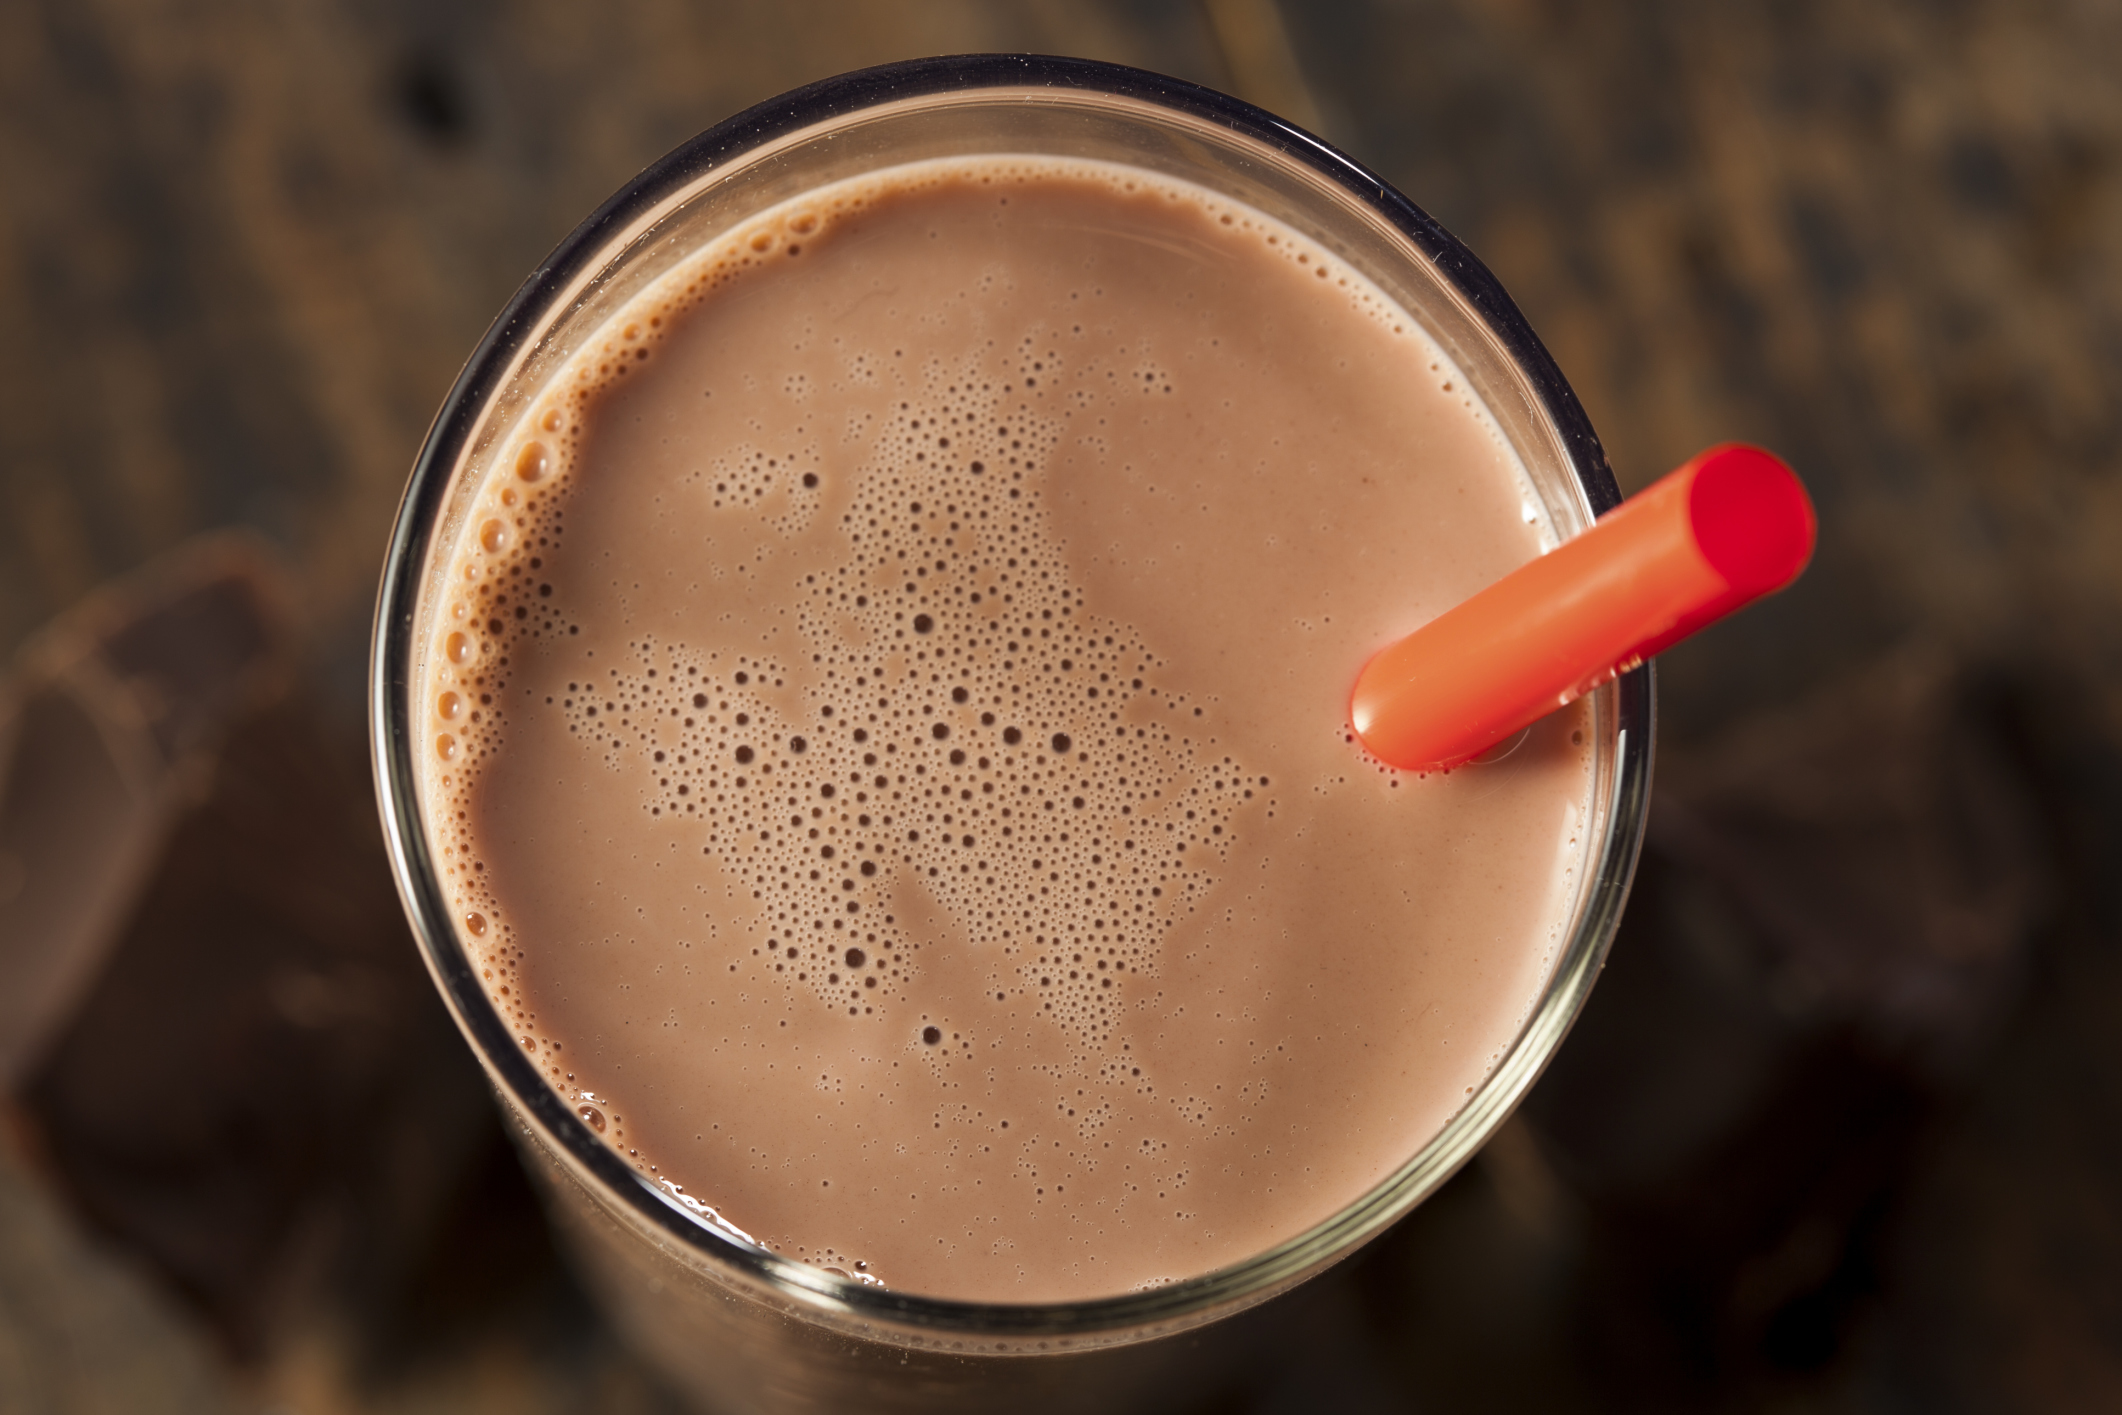 Report: 7 percent of Americans think brown cows make chocolate milk